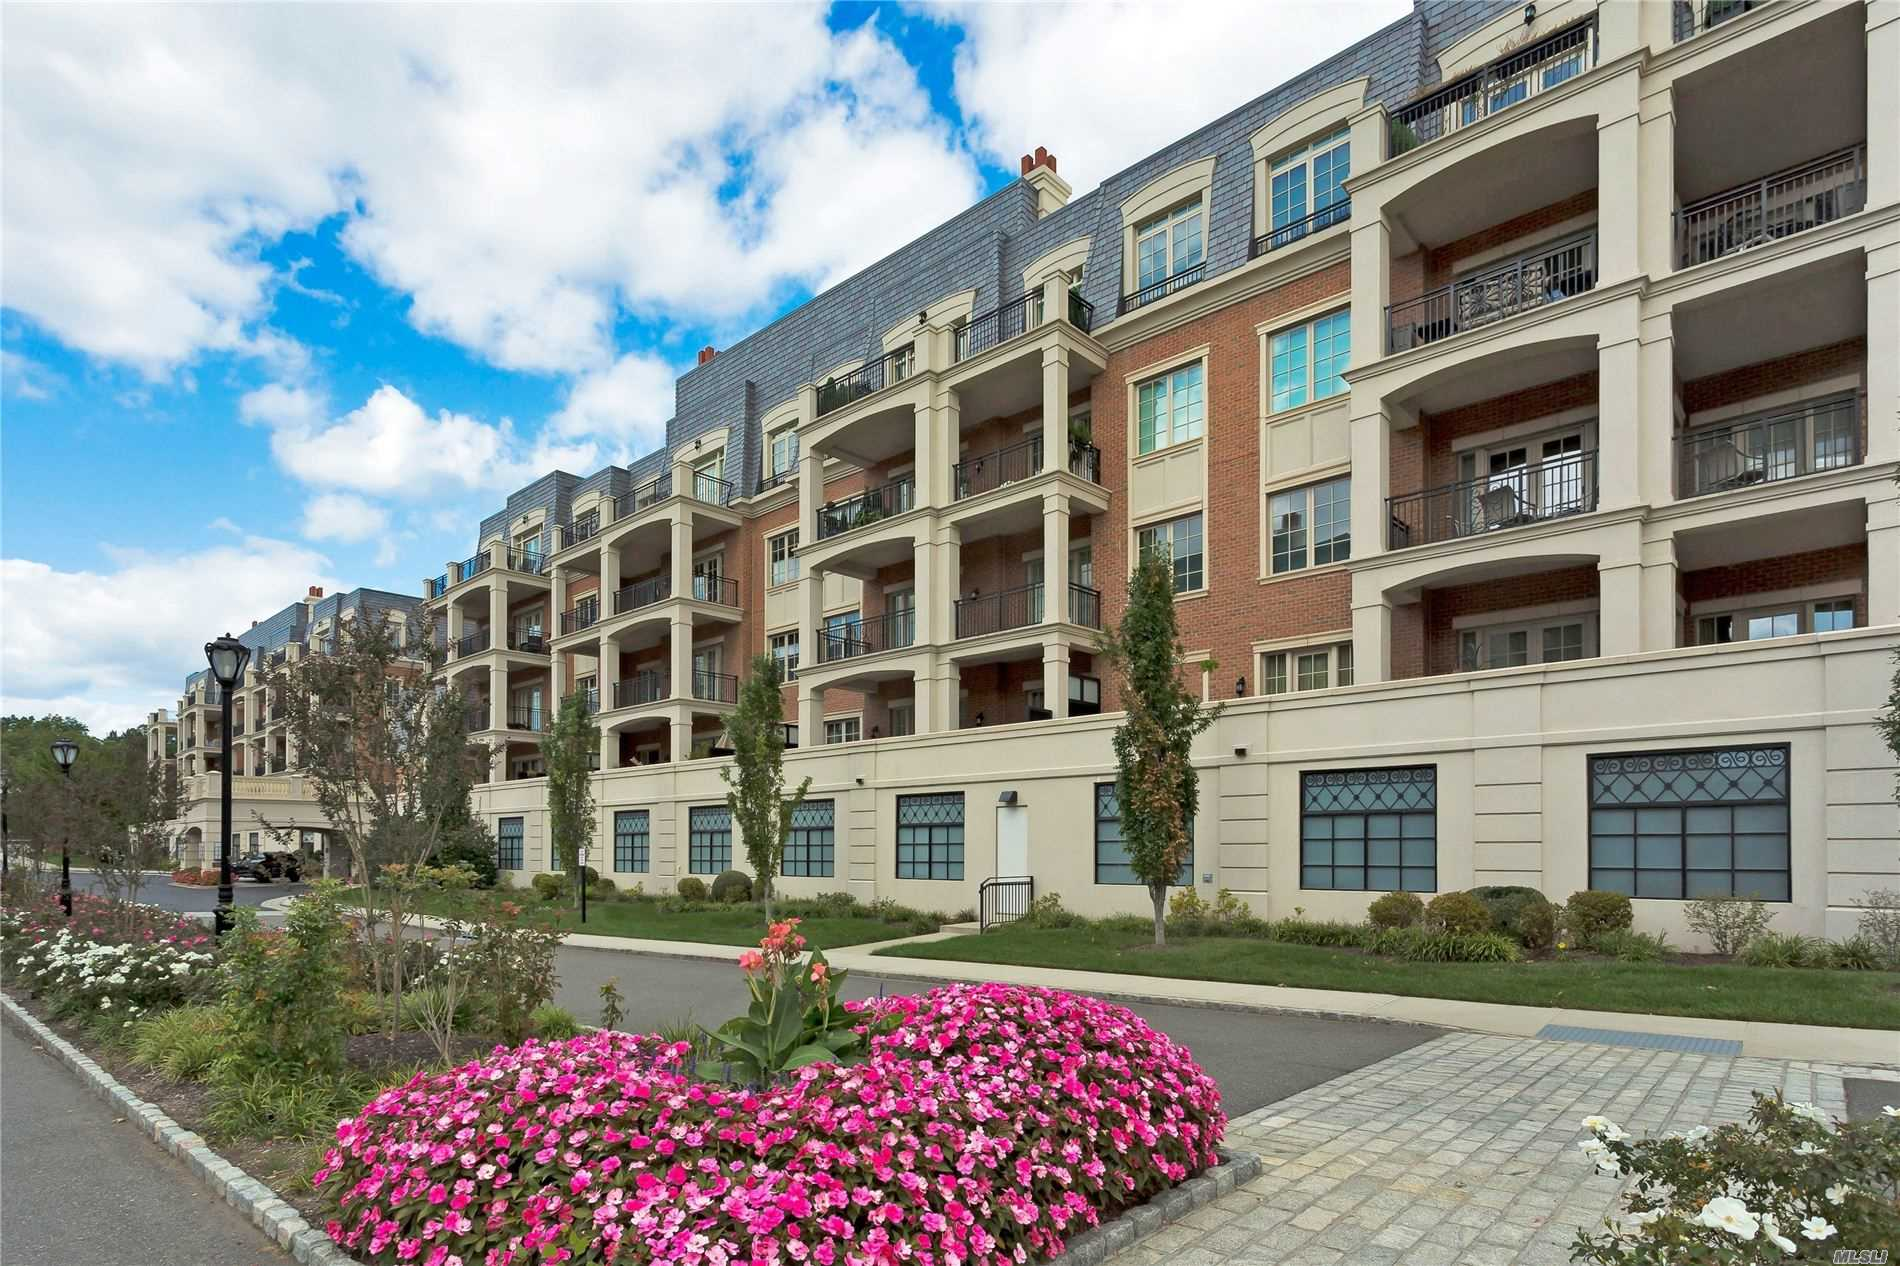 North Hills. This luxury 2 Bedroom 2.5 Bath Residence Features an Open Floor Plan, Chef's Kitchen, Hardwood Floors, Private Balcony. 24-Hour Security, Concierge, Fitness Center, Car Service to LIRR.